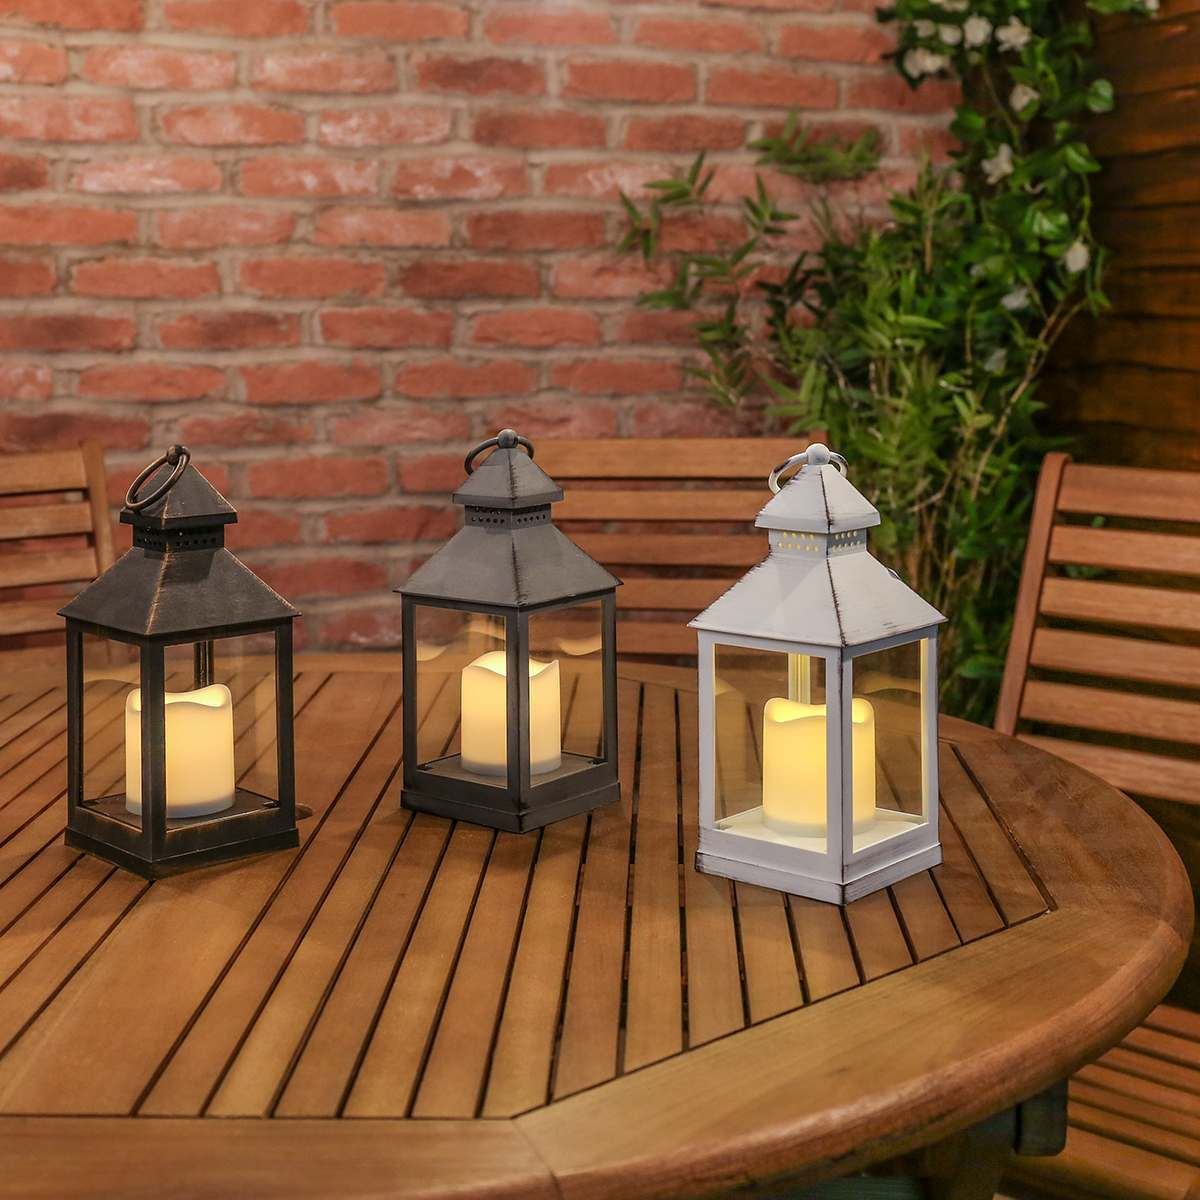 Outdoor Low Voltage Lighting Bulbs Outdoor Battery Flickering Candle Lantern, 24cm